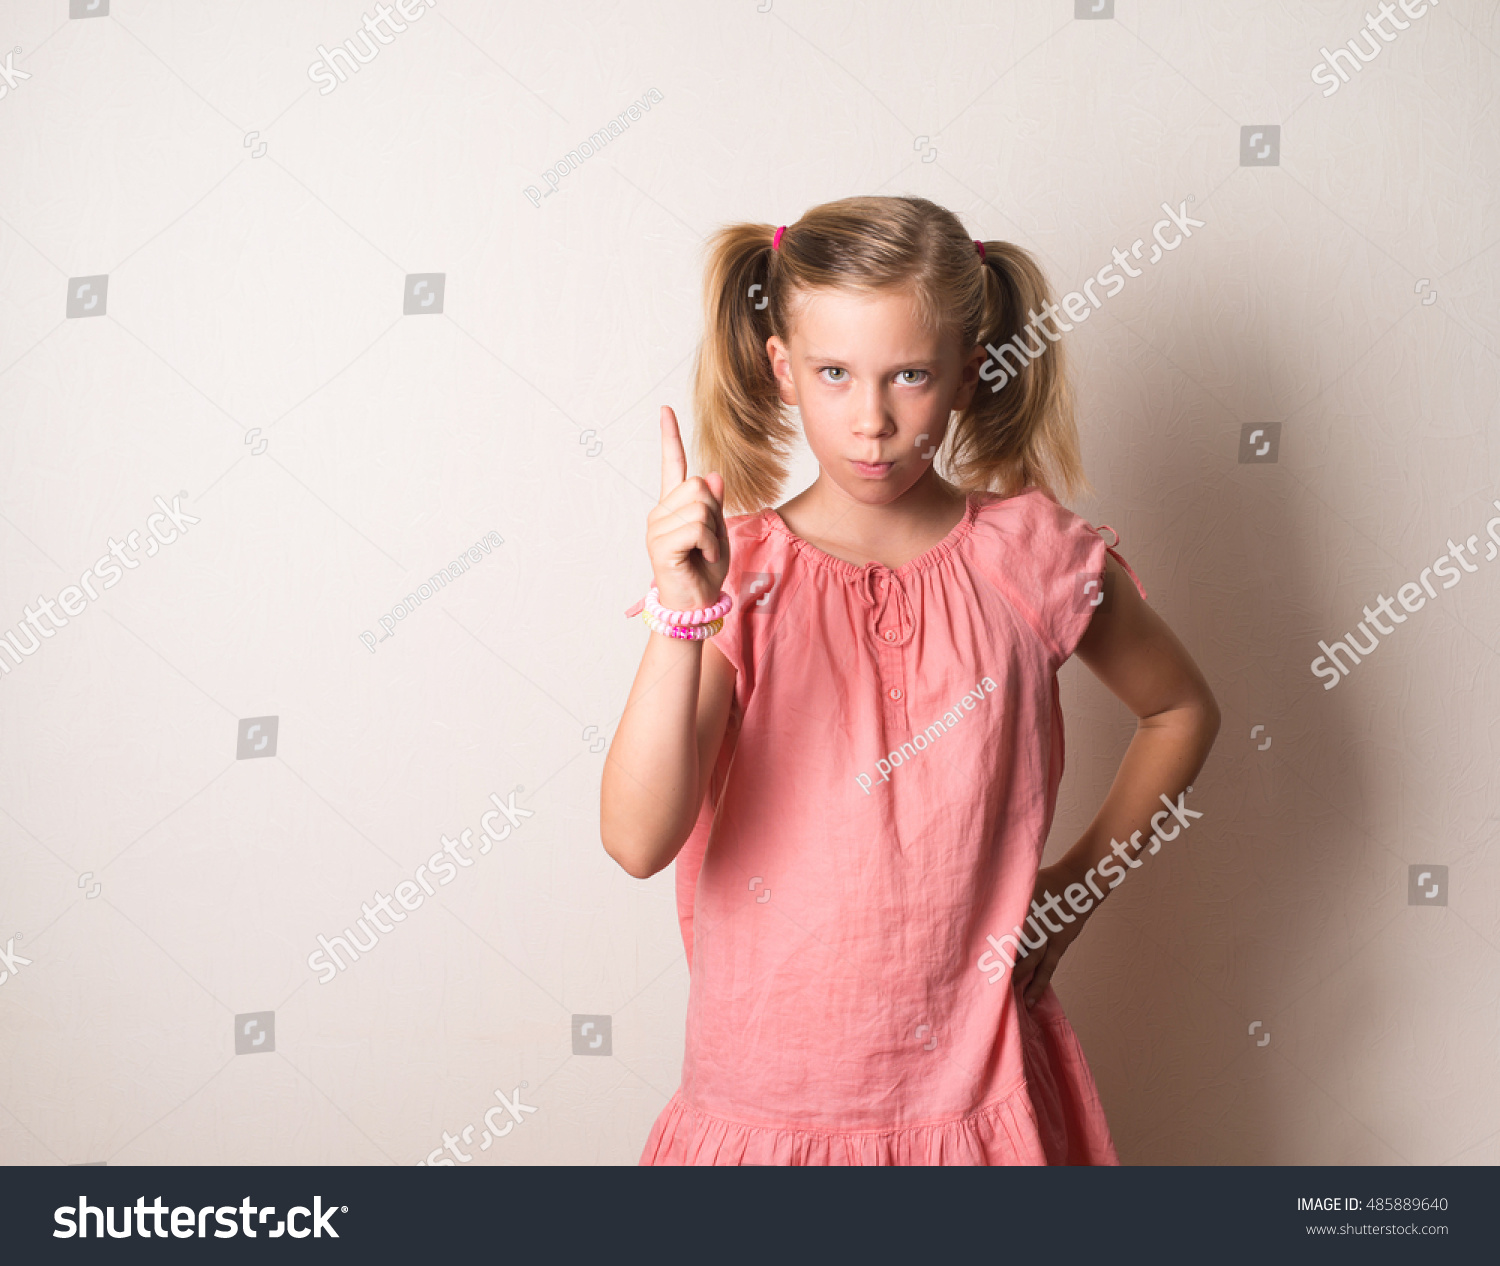 Portrait Serious Frowning Angry Grumpy Girl Stock Photo ...